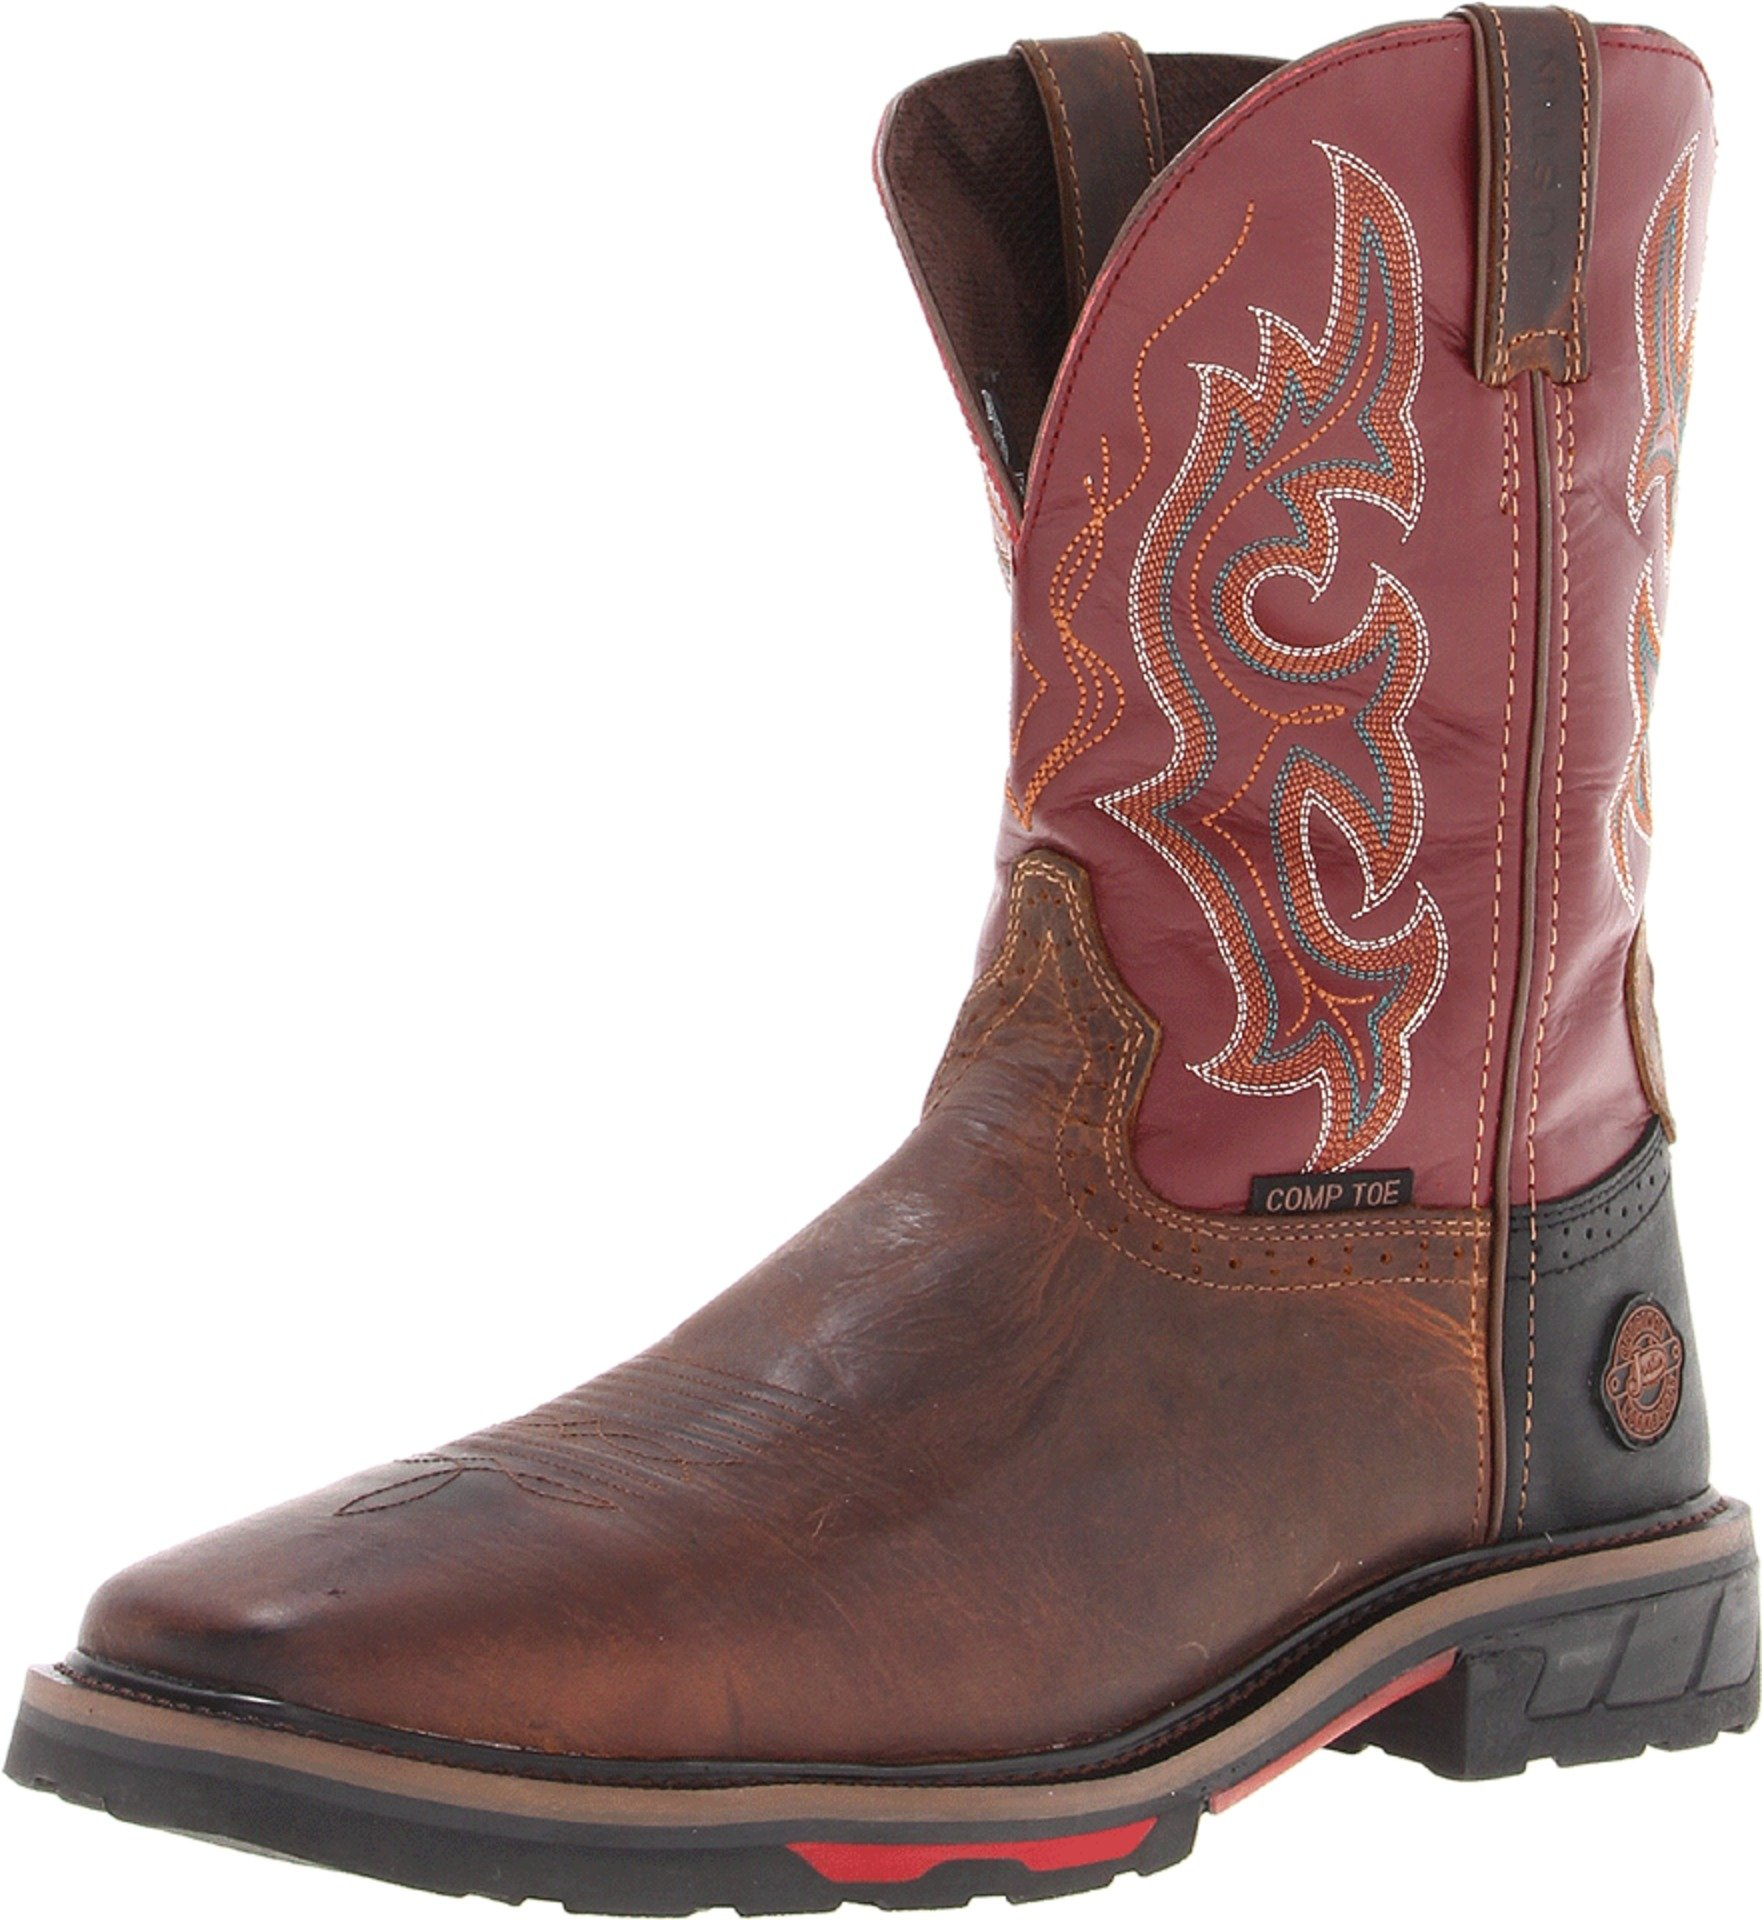 Justin Original Work Boots Men's Hybred Comp Toe Work Boot,Rugged Utah/Red Oiled,10.5 D US